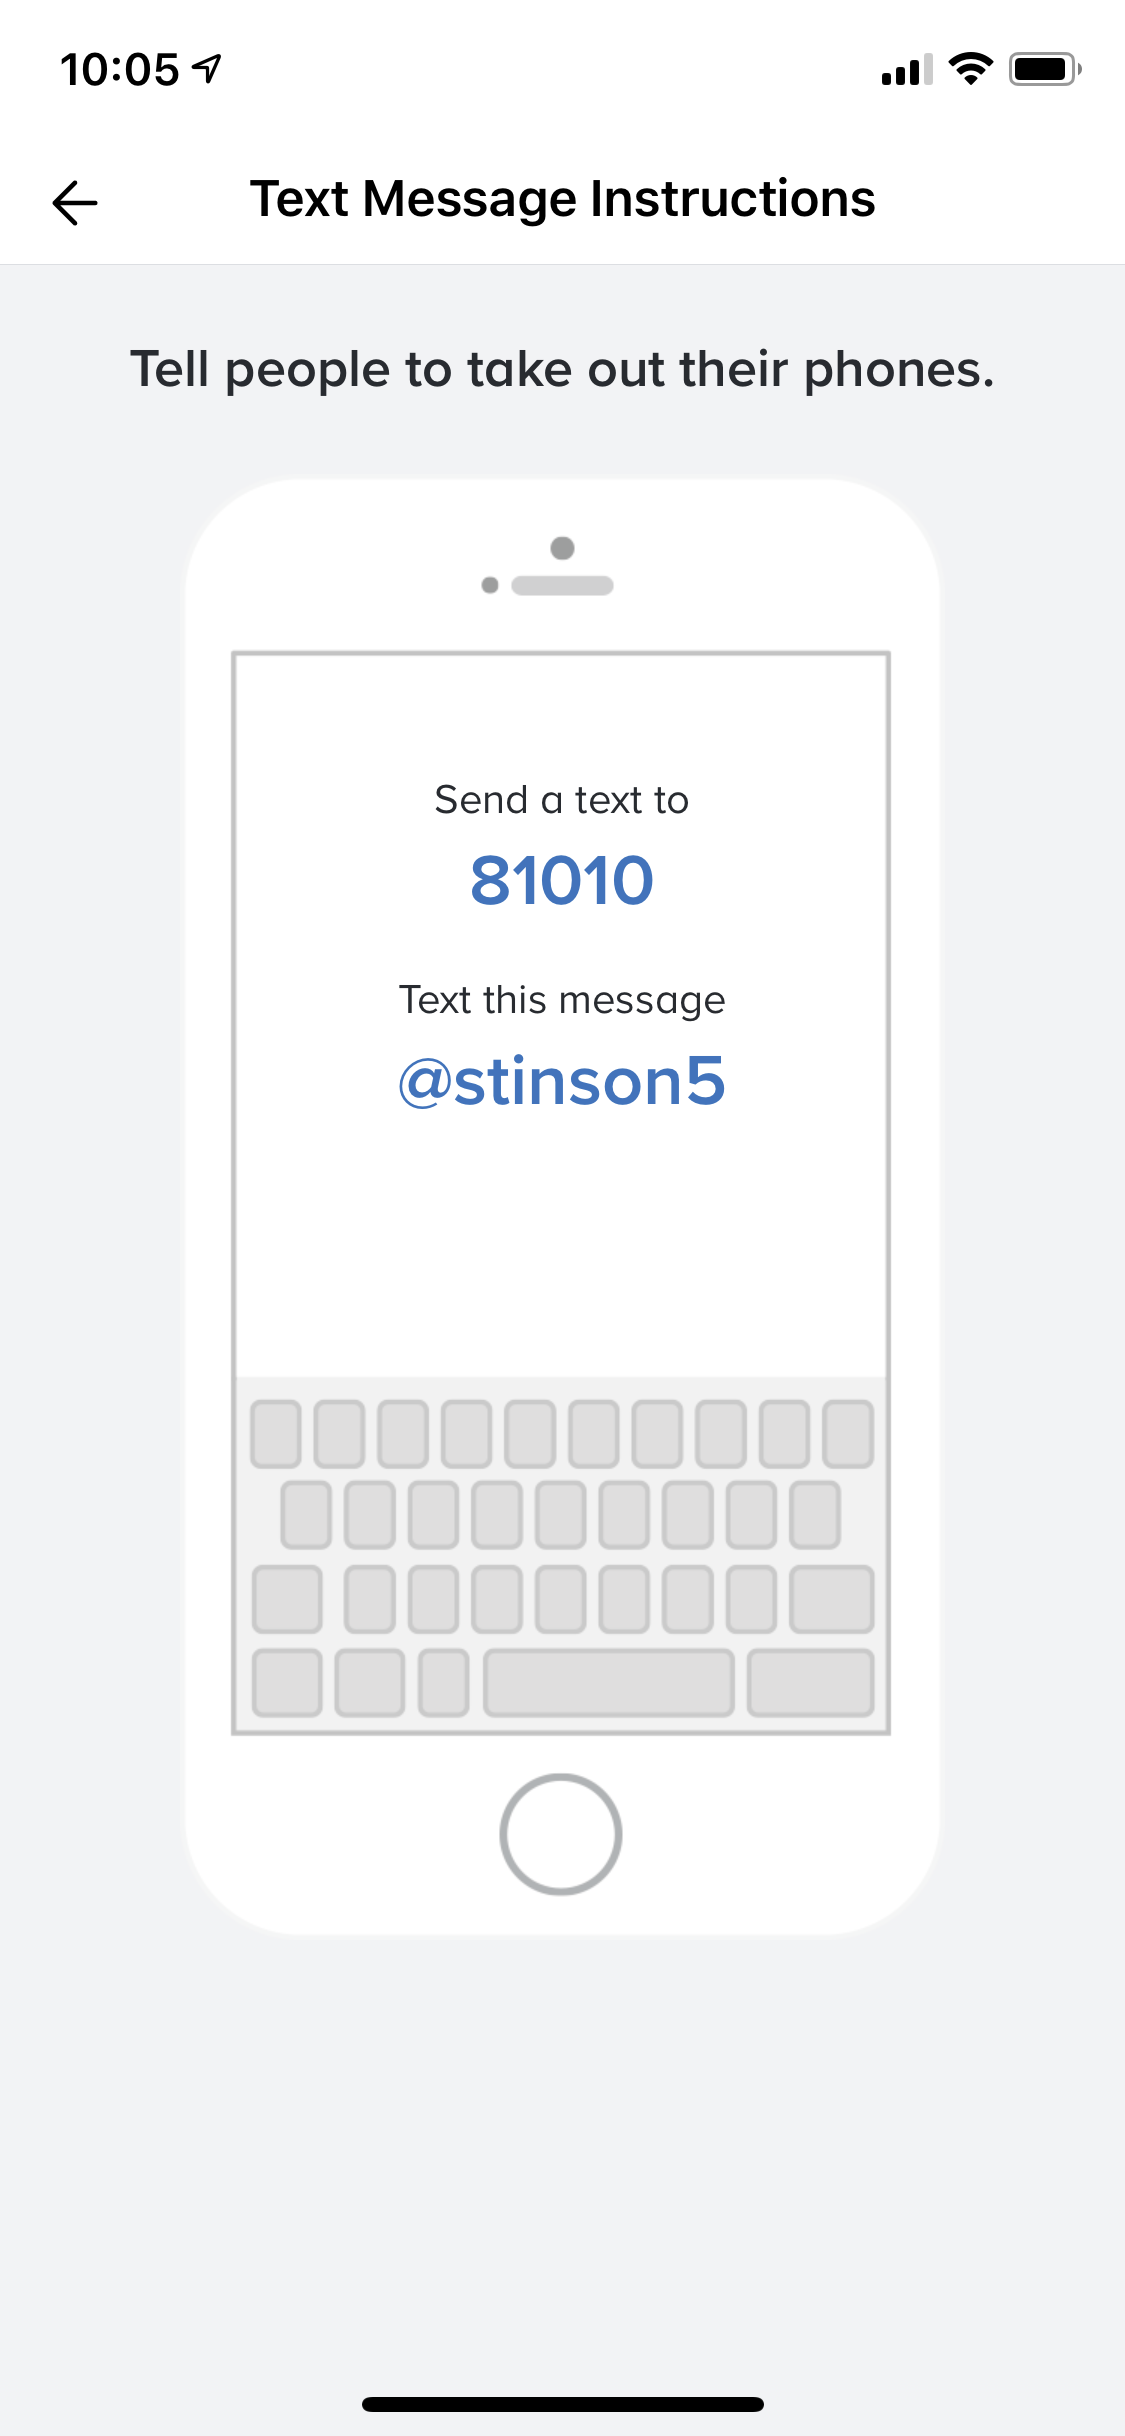 PLEASE JOIN REMIND 101 ASAP!